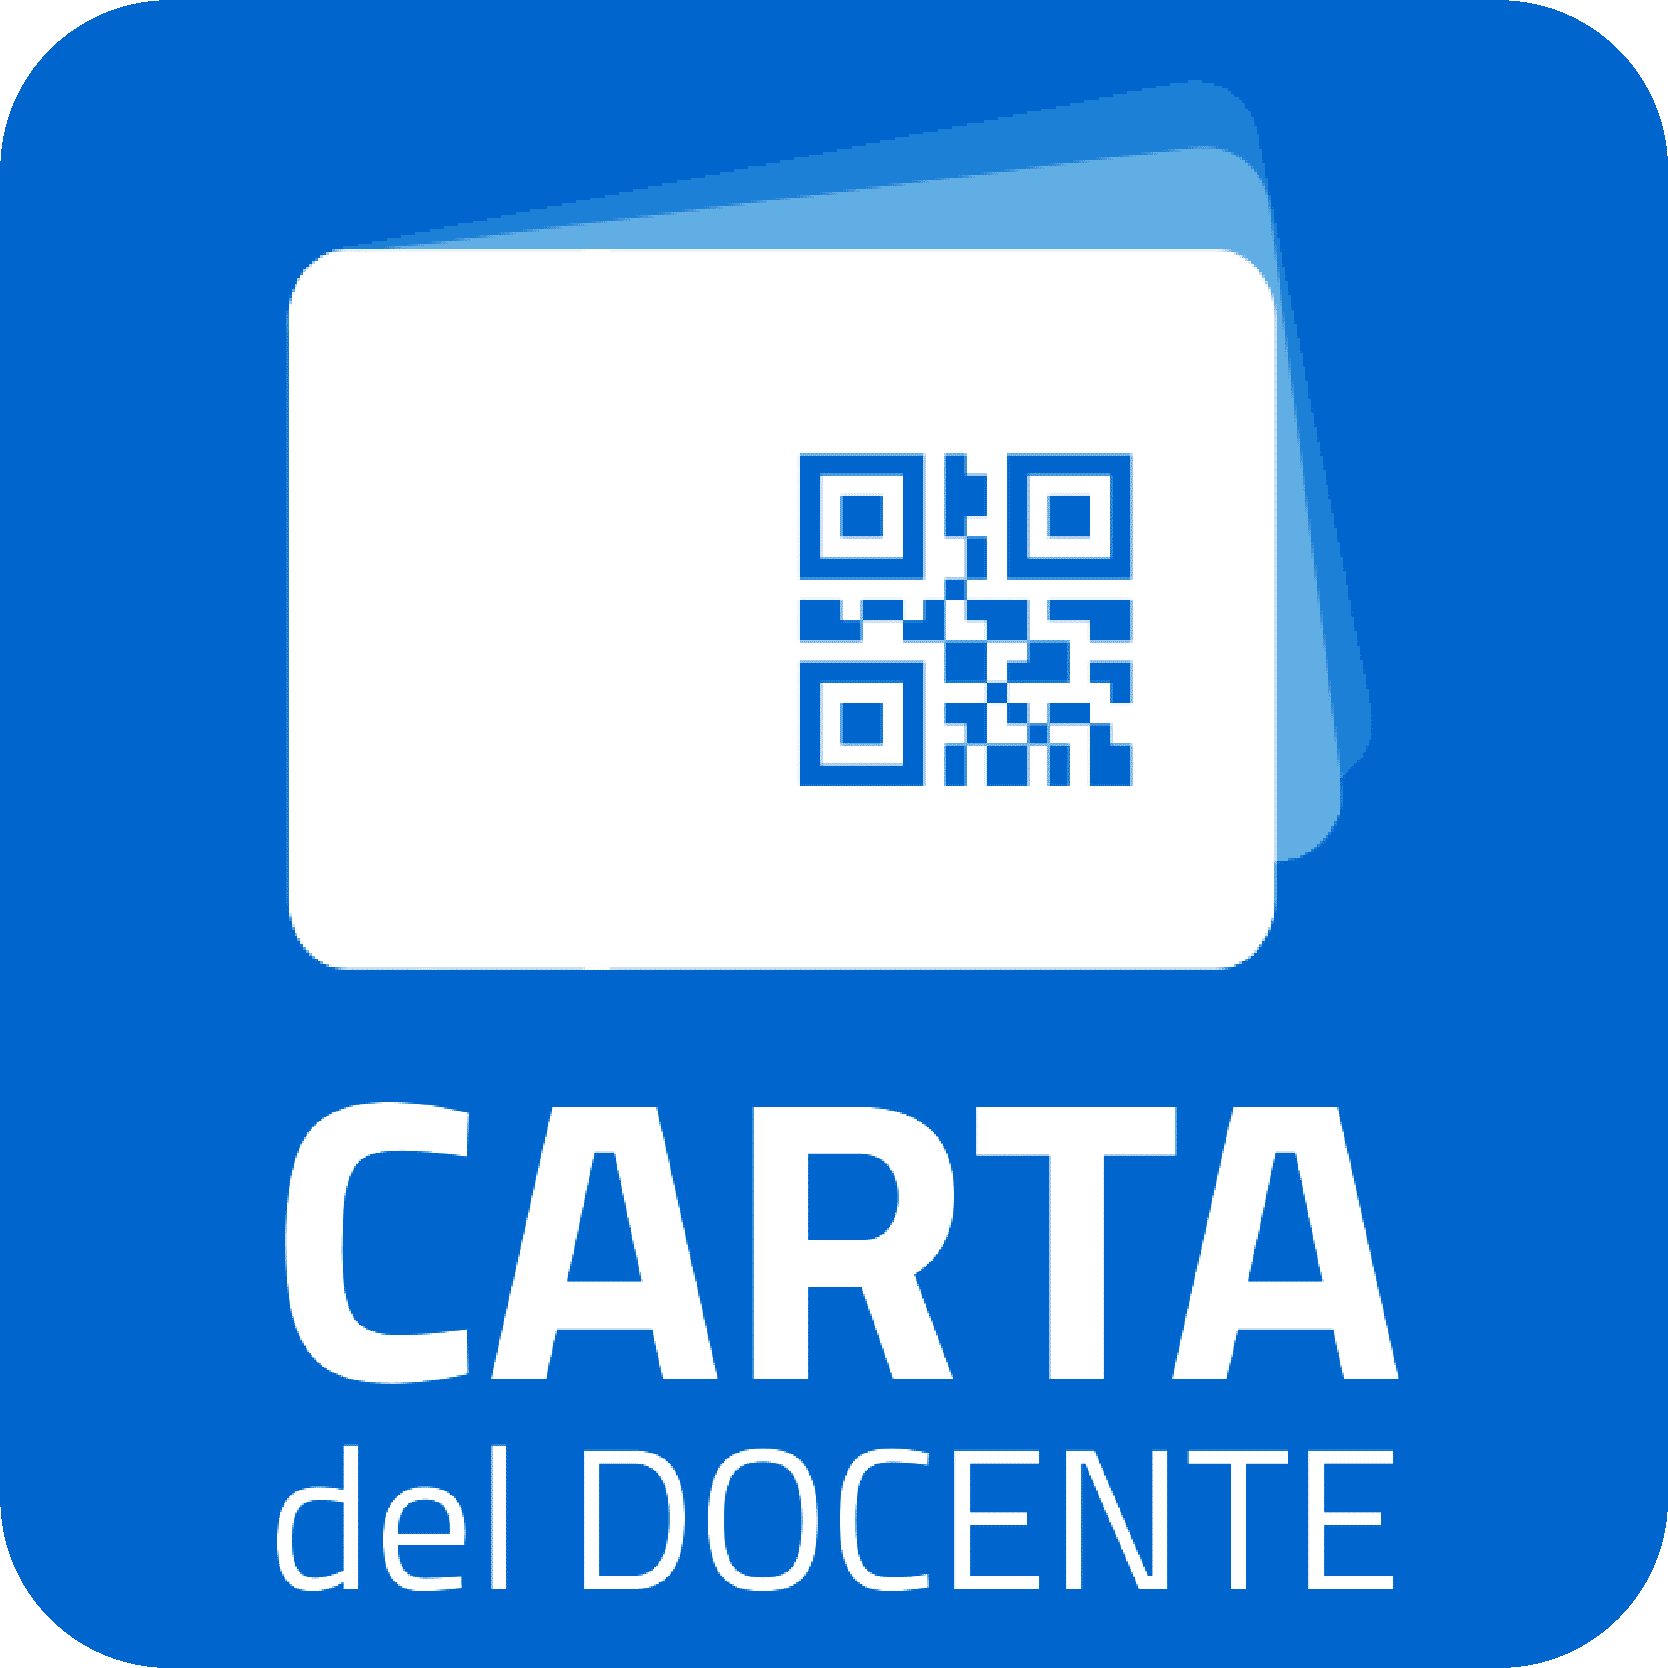 carta-del-docente-home-01.png